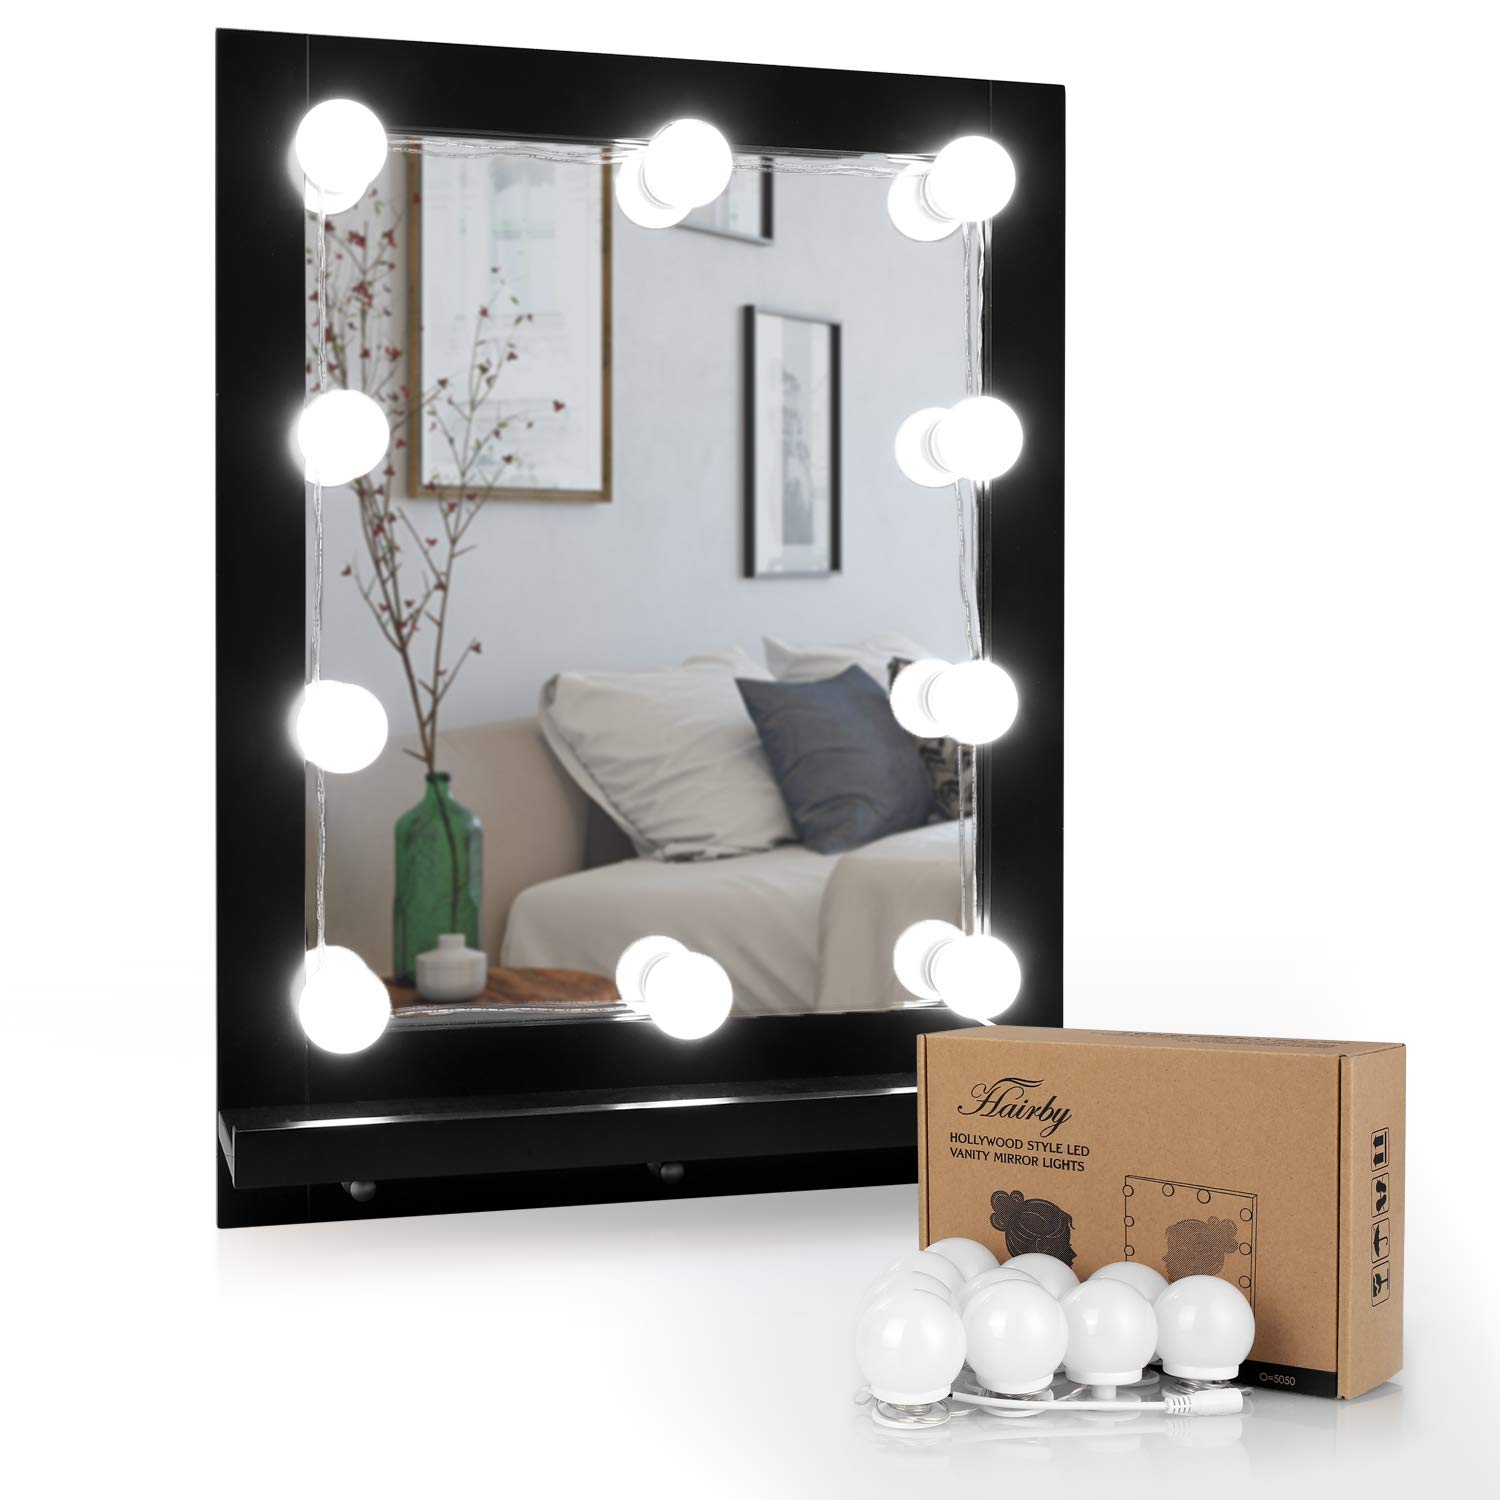 HAIRBY Hollywood Style LED Vanity Mirror Lights Kit with 10 Dimmable Bulbs, Plug in Makeup Mirror Lights with 3M Stickers Attached to Bathroom Wall or Dressing Table, 13.1ft, Mirror Not Included